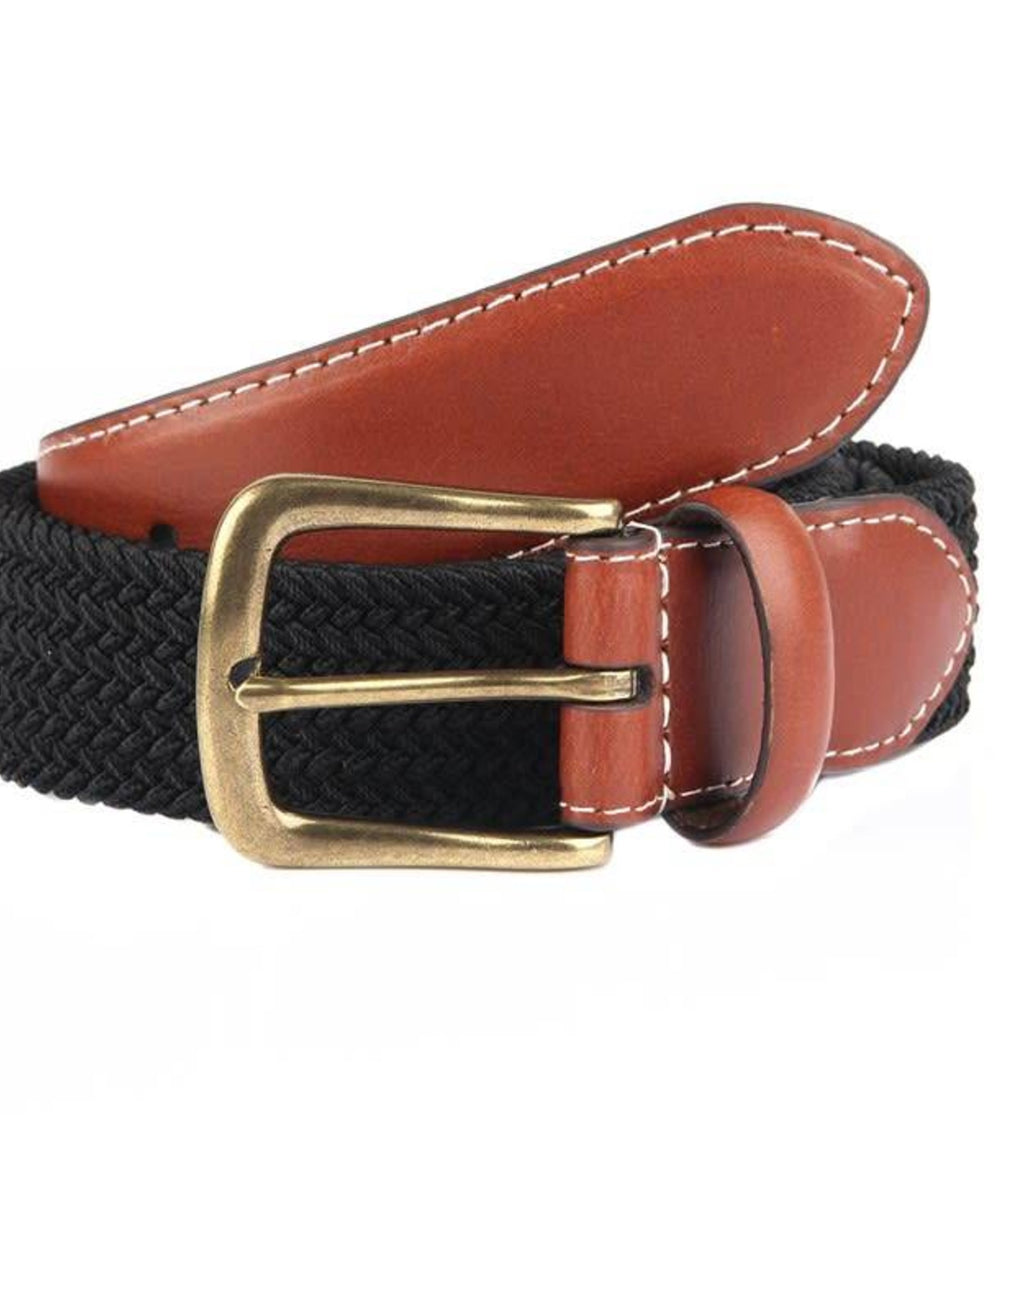 Dents Elasticated Casual Belt - Black - MitchellMcCabe